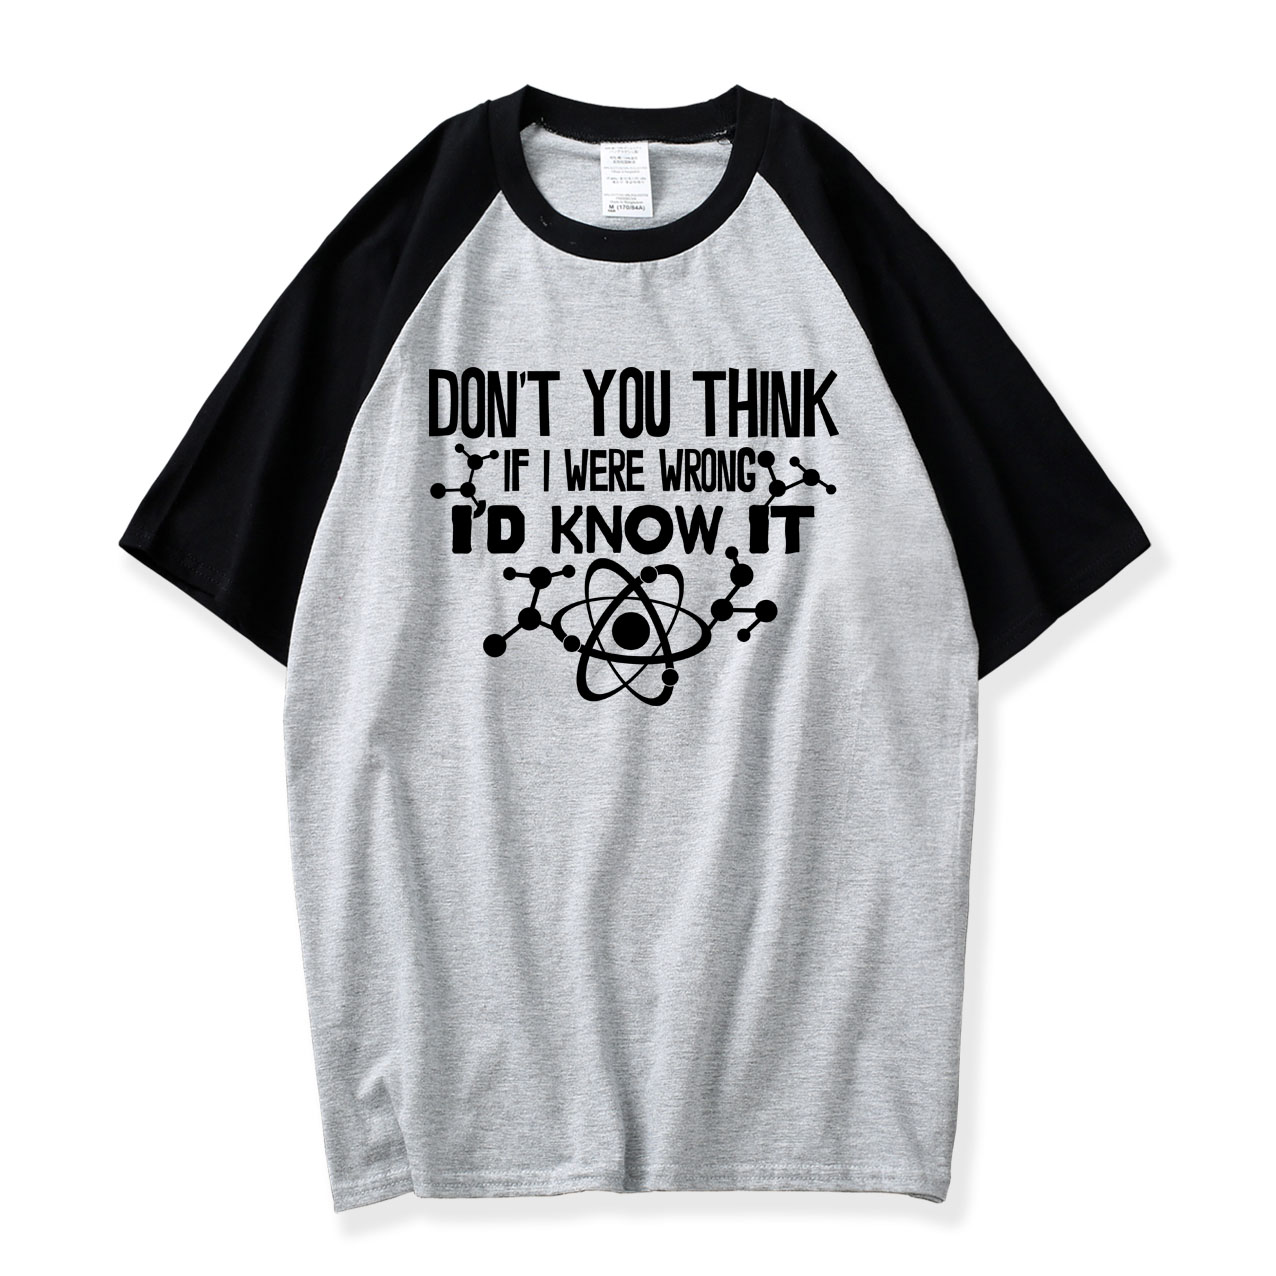 Don't You Think If I Were Wrong I'd Know It Science Funny T Shirt 2018 Hot Summer 100% Cotton O-neck Raglan Shirt Men Boys Tops